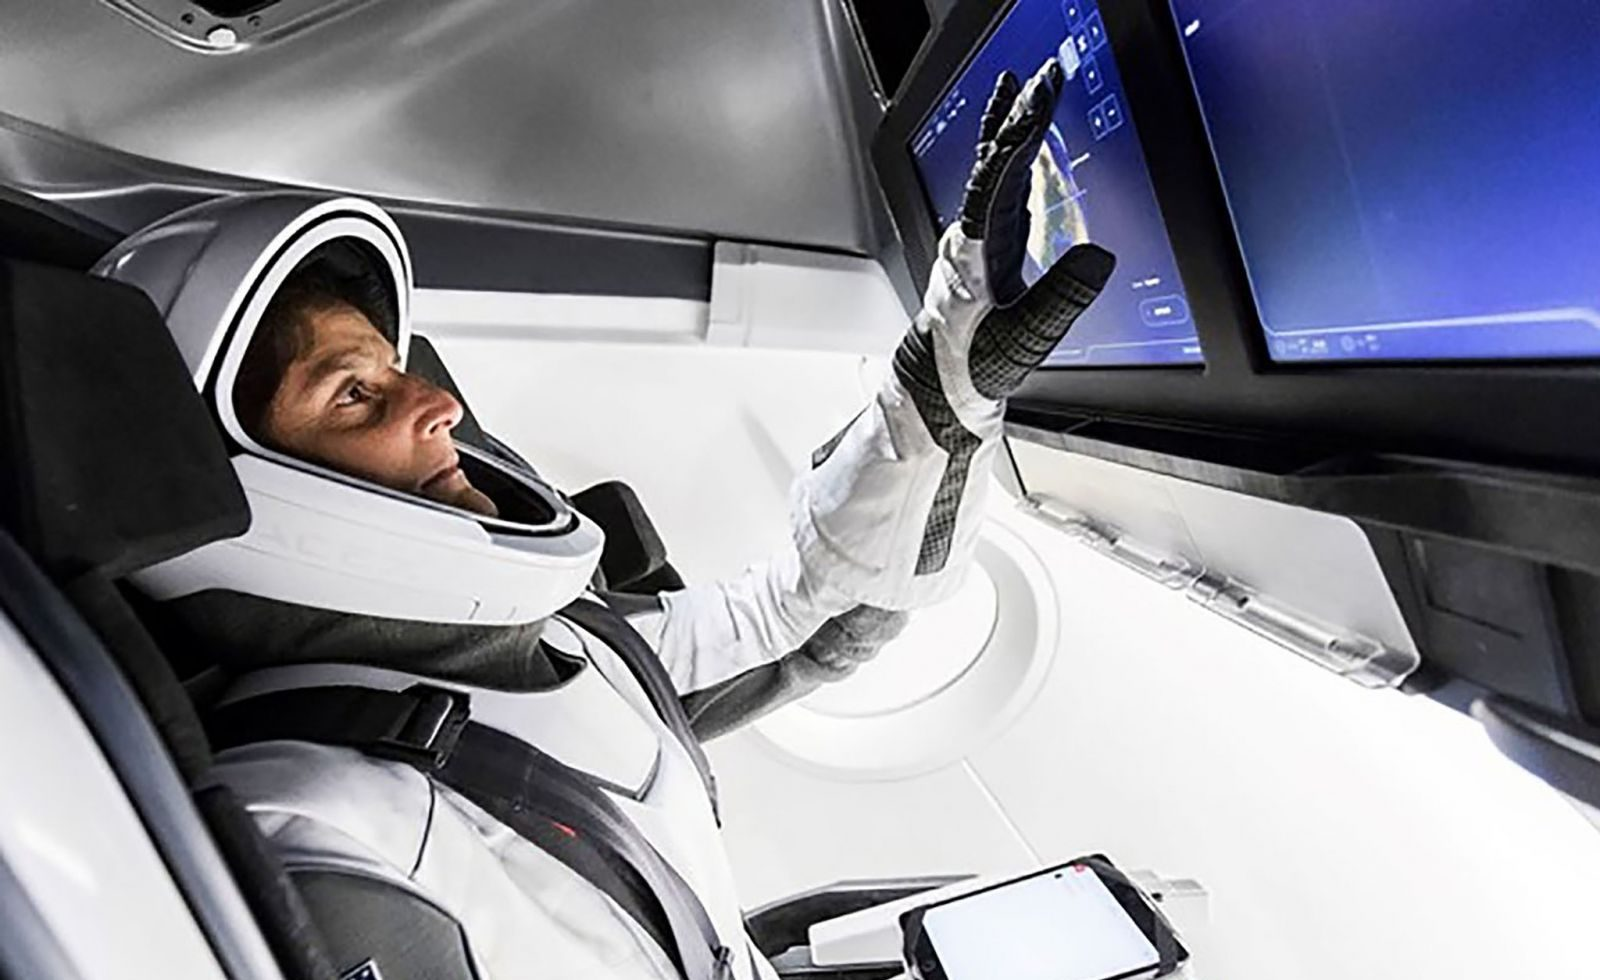 NASA astronaut Suni Williams takes part in a simulated mission aboard SpaceX's Crew Dragon spacecraft. Williams is wearing SpaceX's spacesuit design. Photo credit: SpaceX